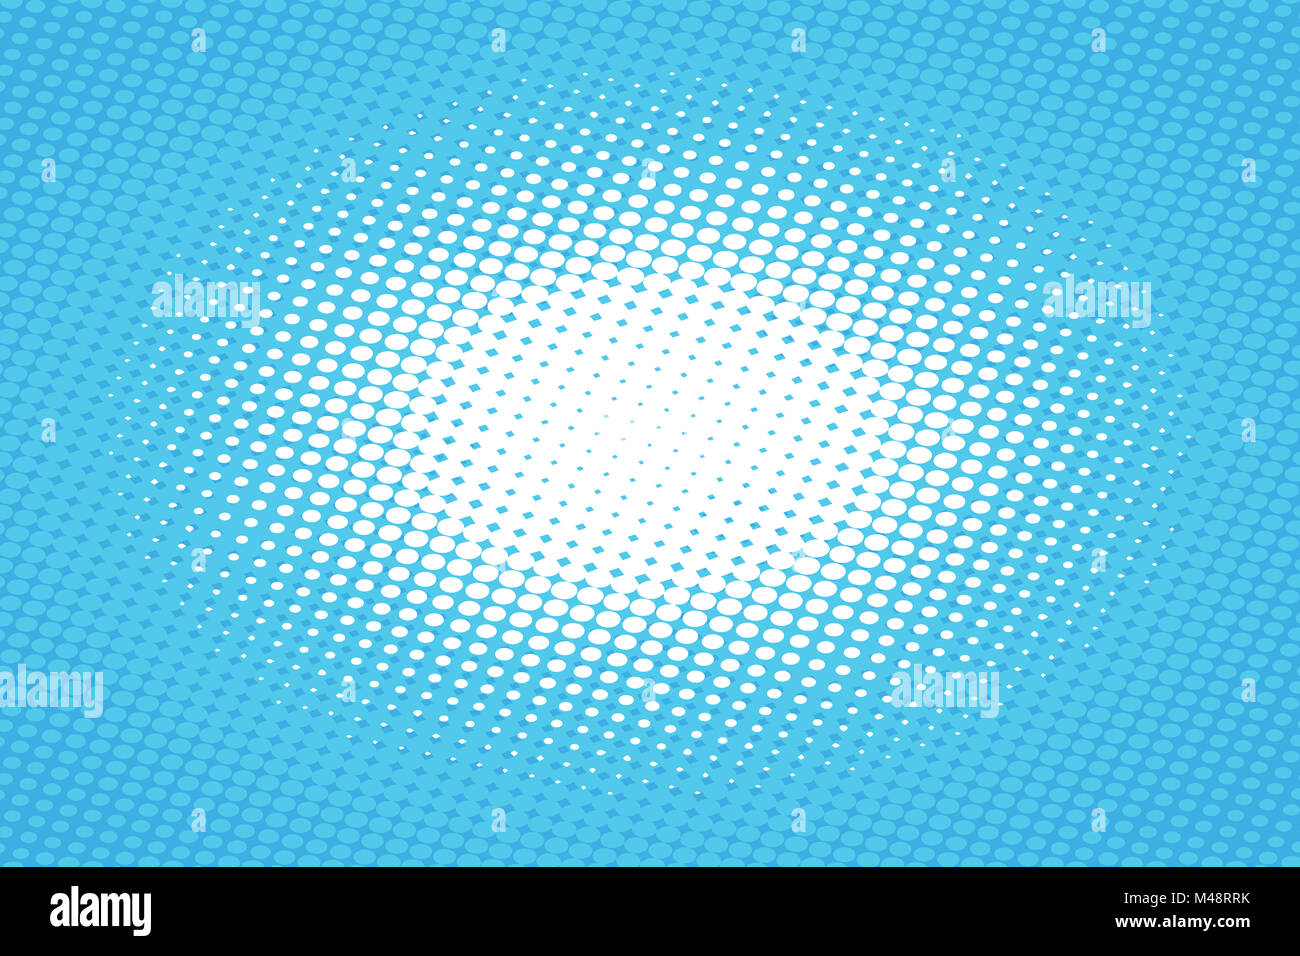 Blue pop art retro background with halftone effect - Stock Image